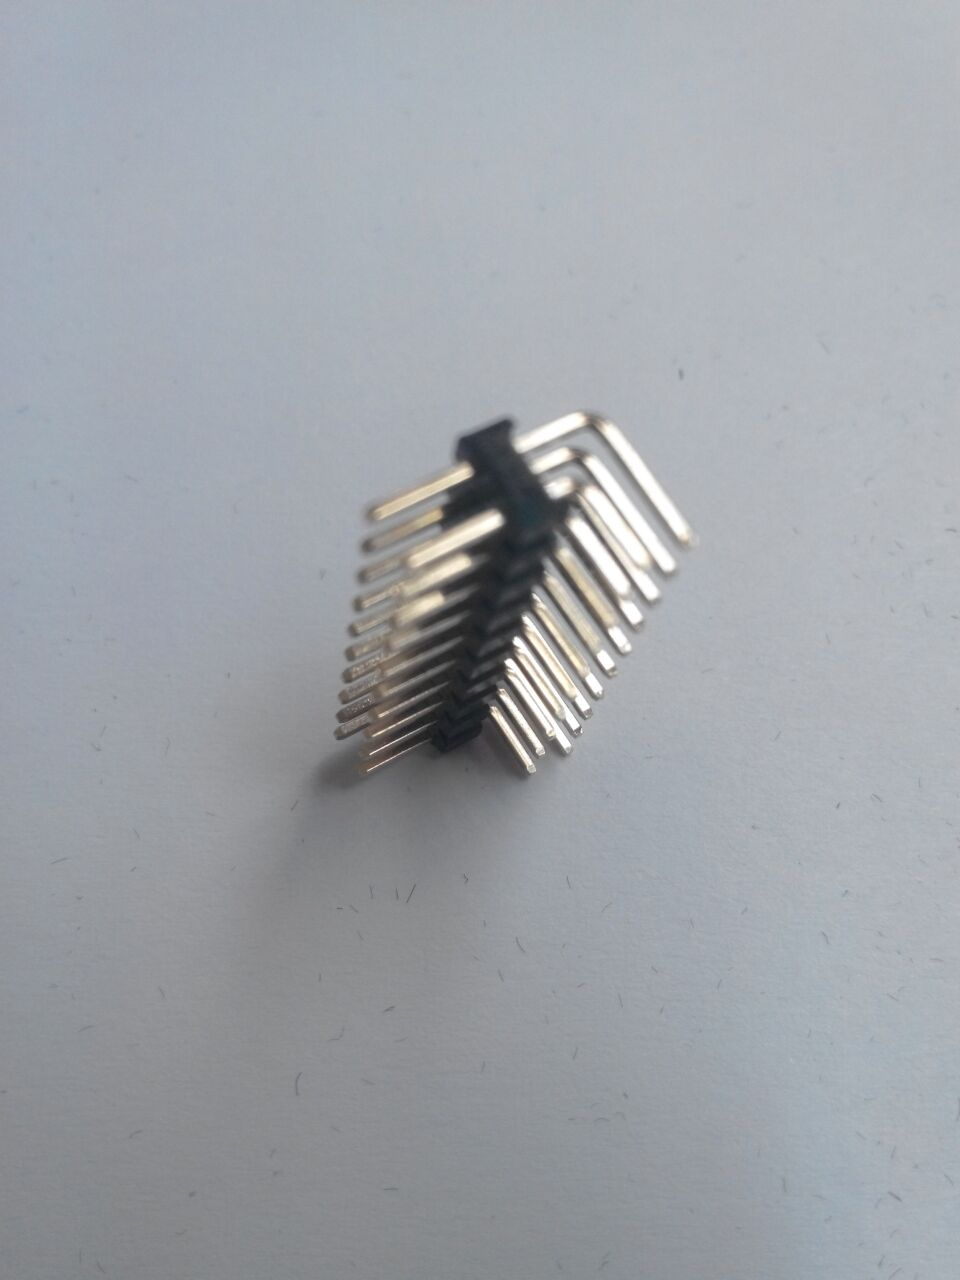 10pcs Gold plated 2.0mm Pitch 2x10 Pin 20 Pin male Double Row bend Pin Header Strip